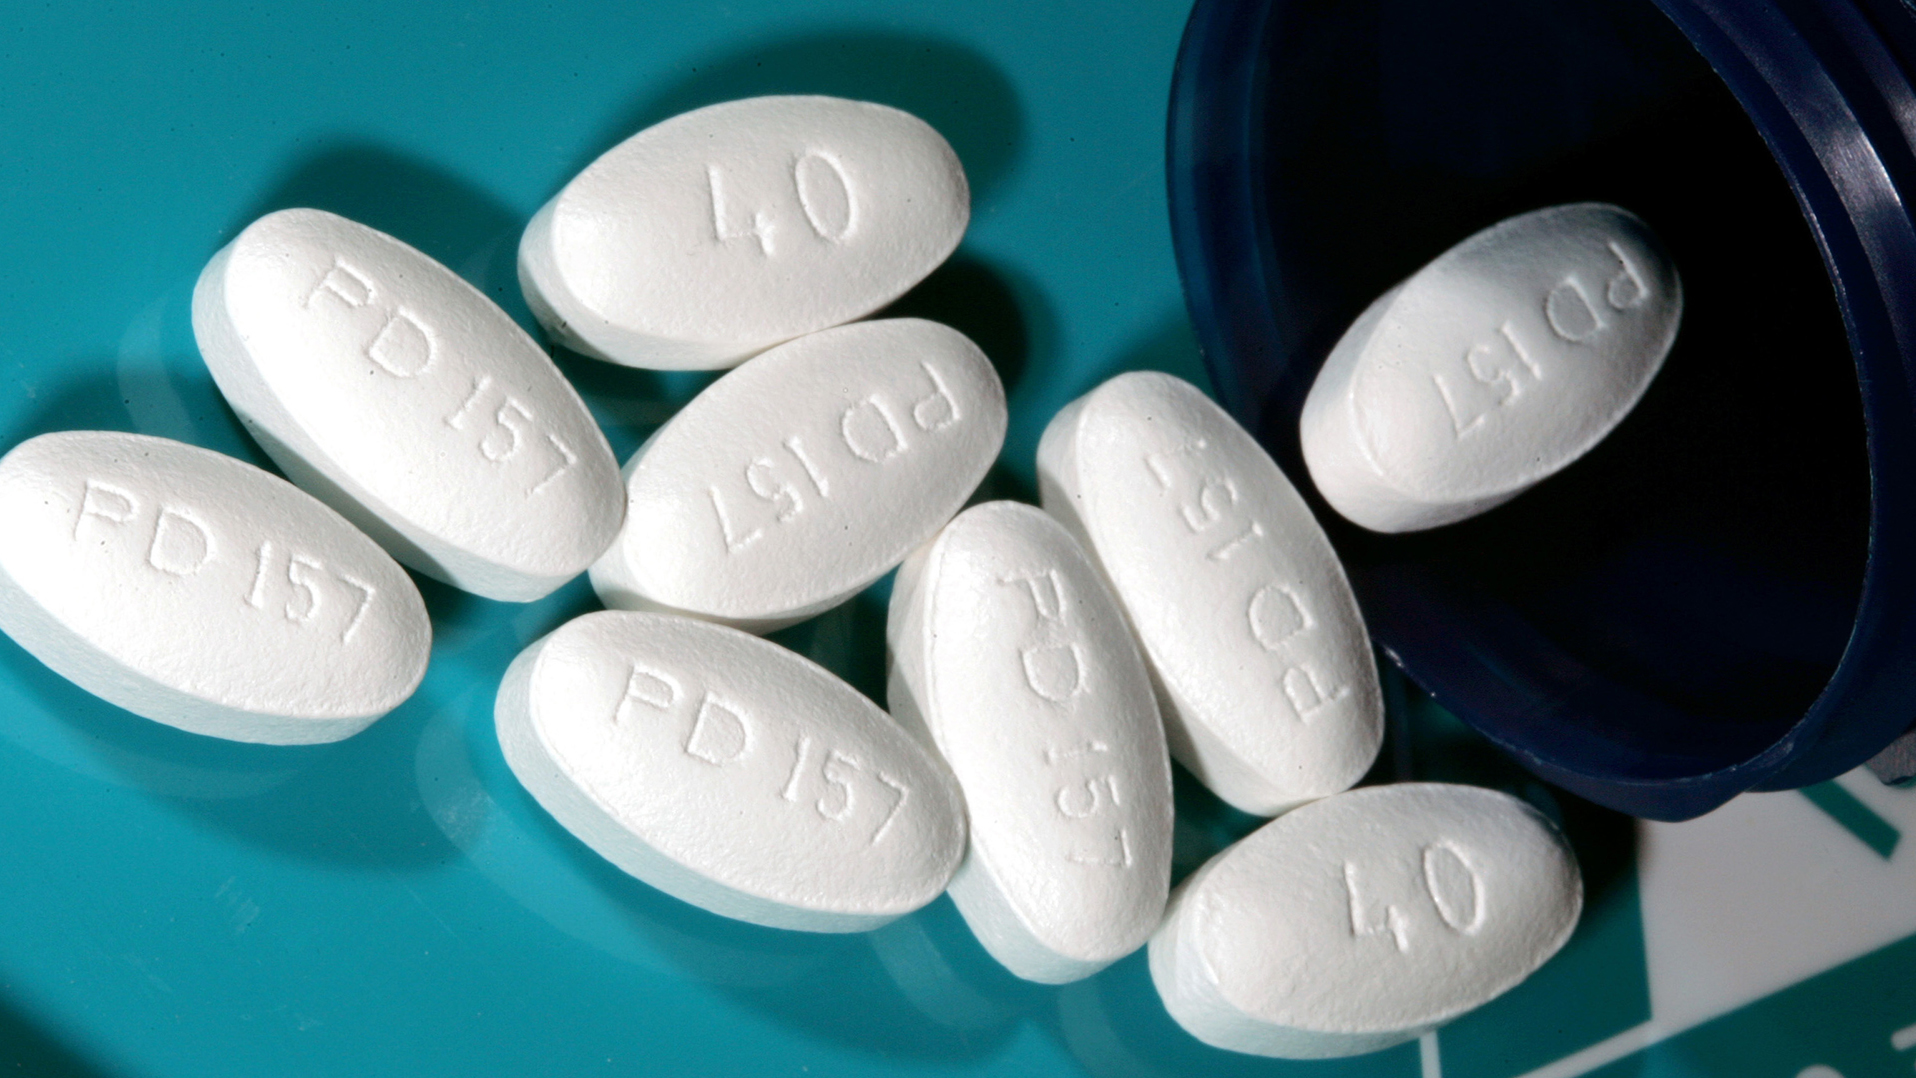 Scientists Find New Tricks For Old Drugs